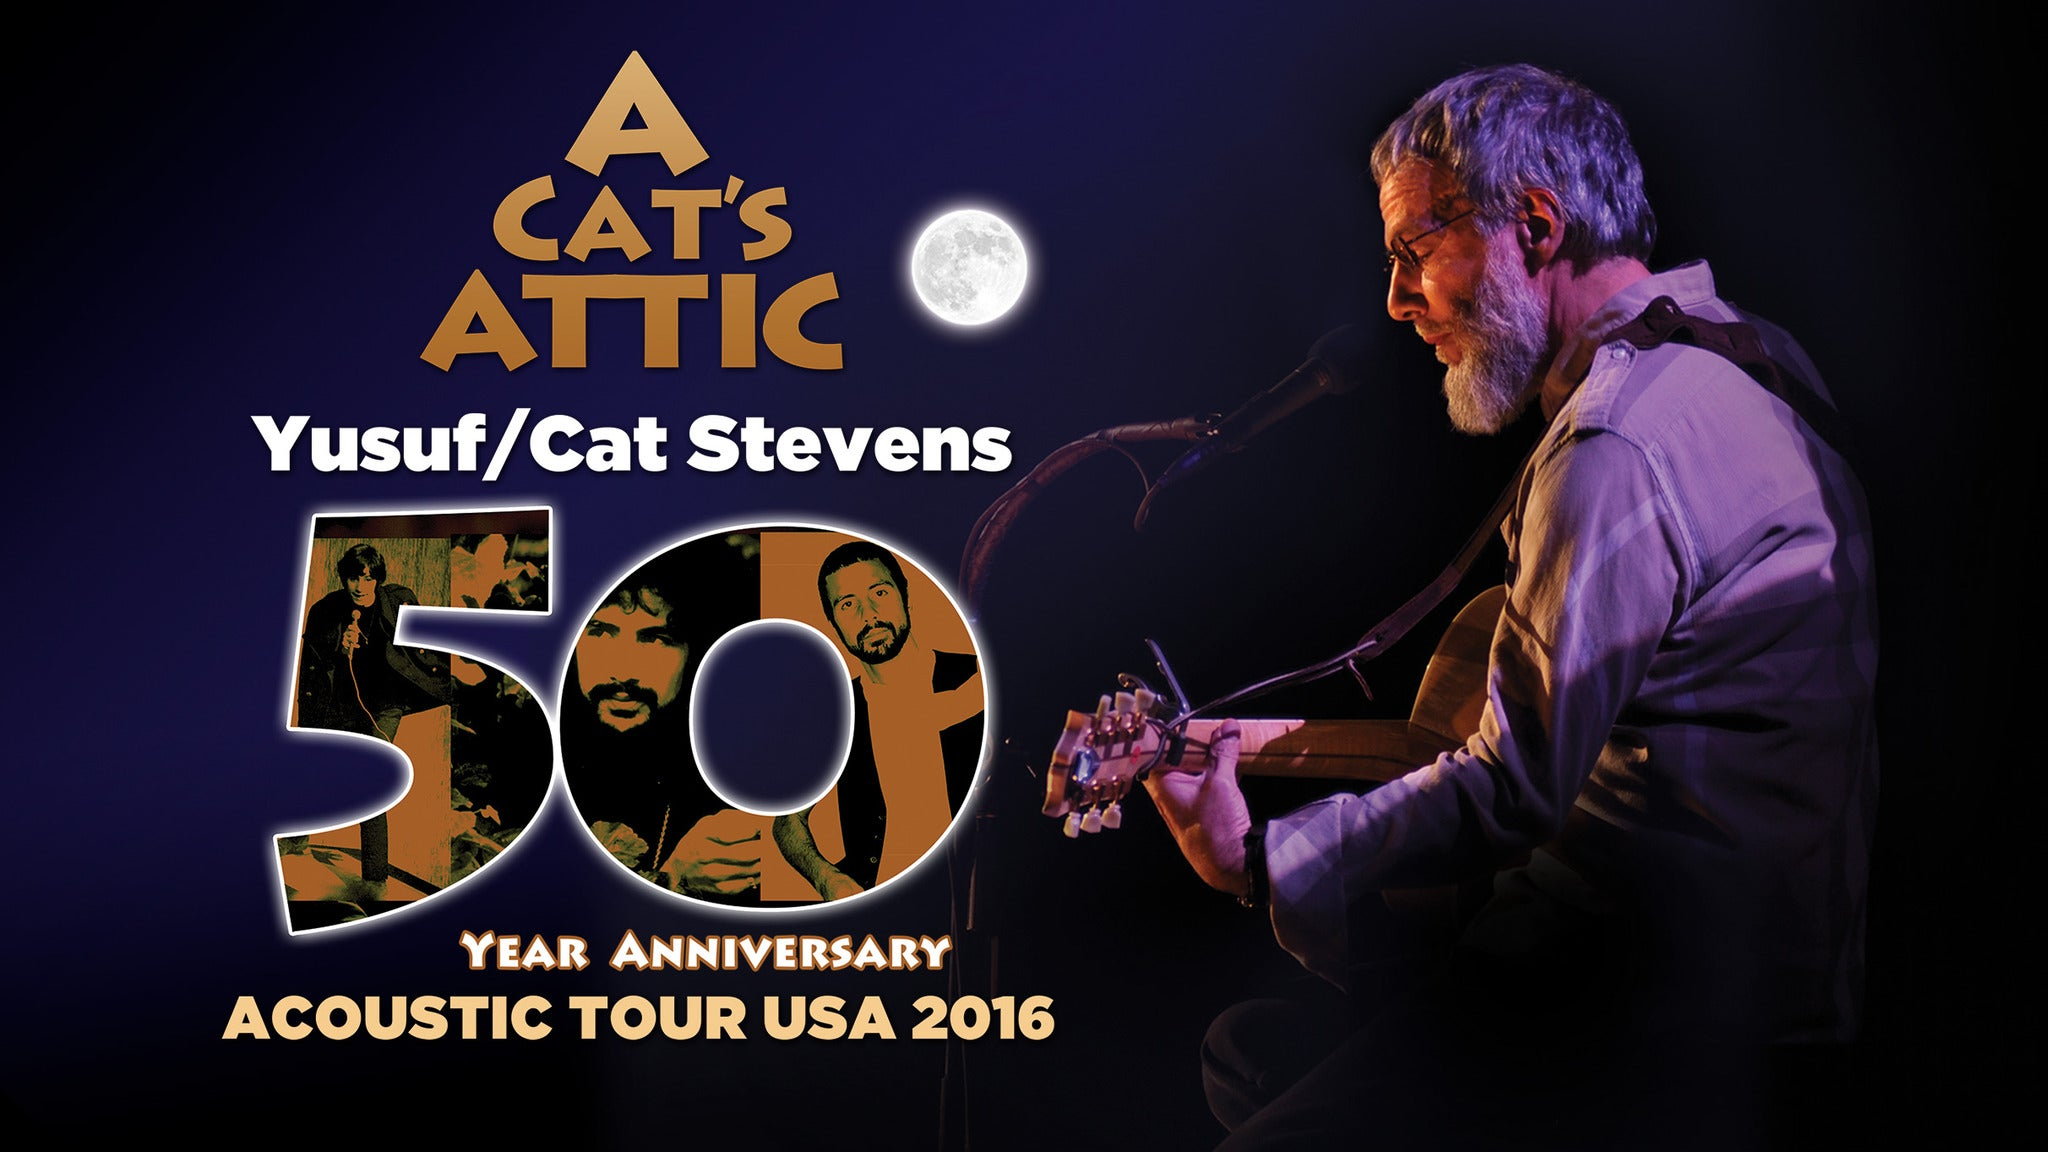 A Cat's Attic:  Yusuf / Cat Stevens